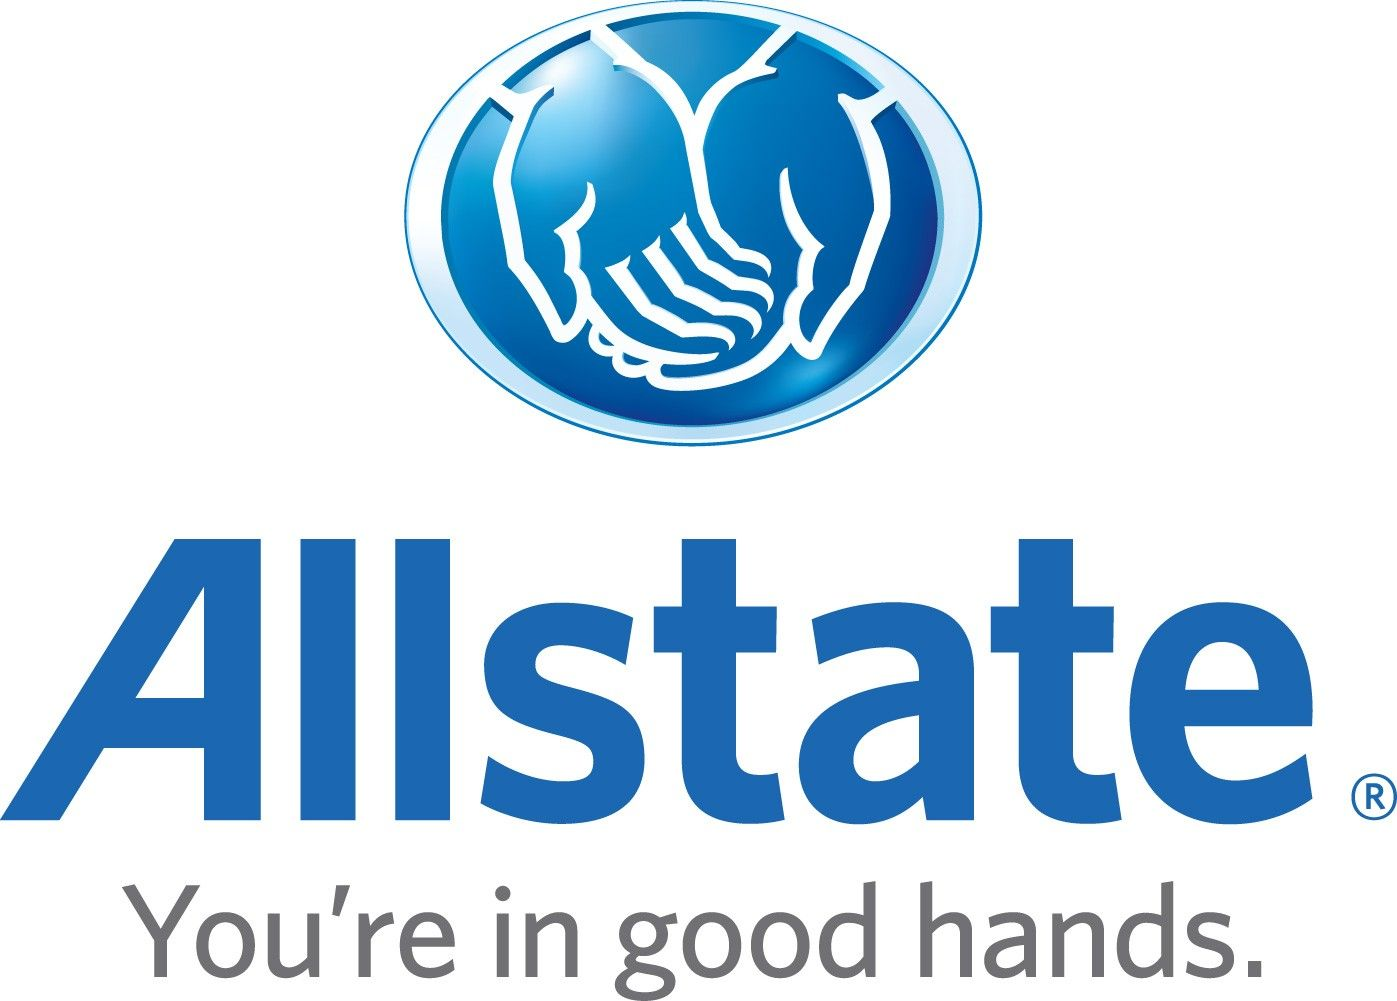 Allstate Life Insurance Quotes Allstate Logo  Google Search  Brand Logos  Pinterest